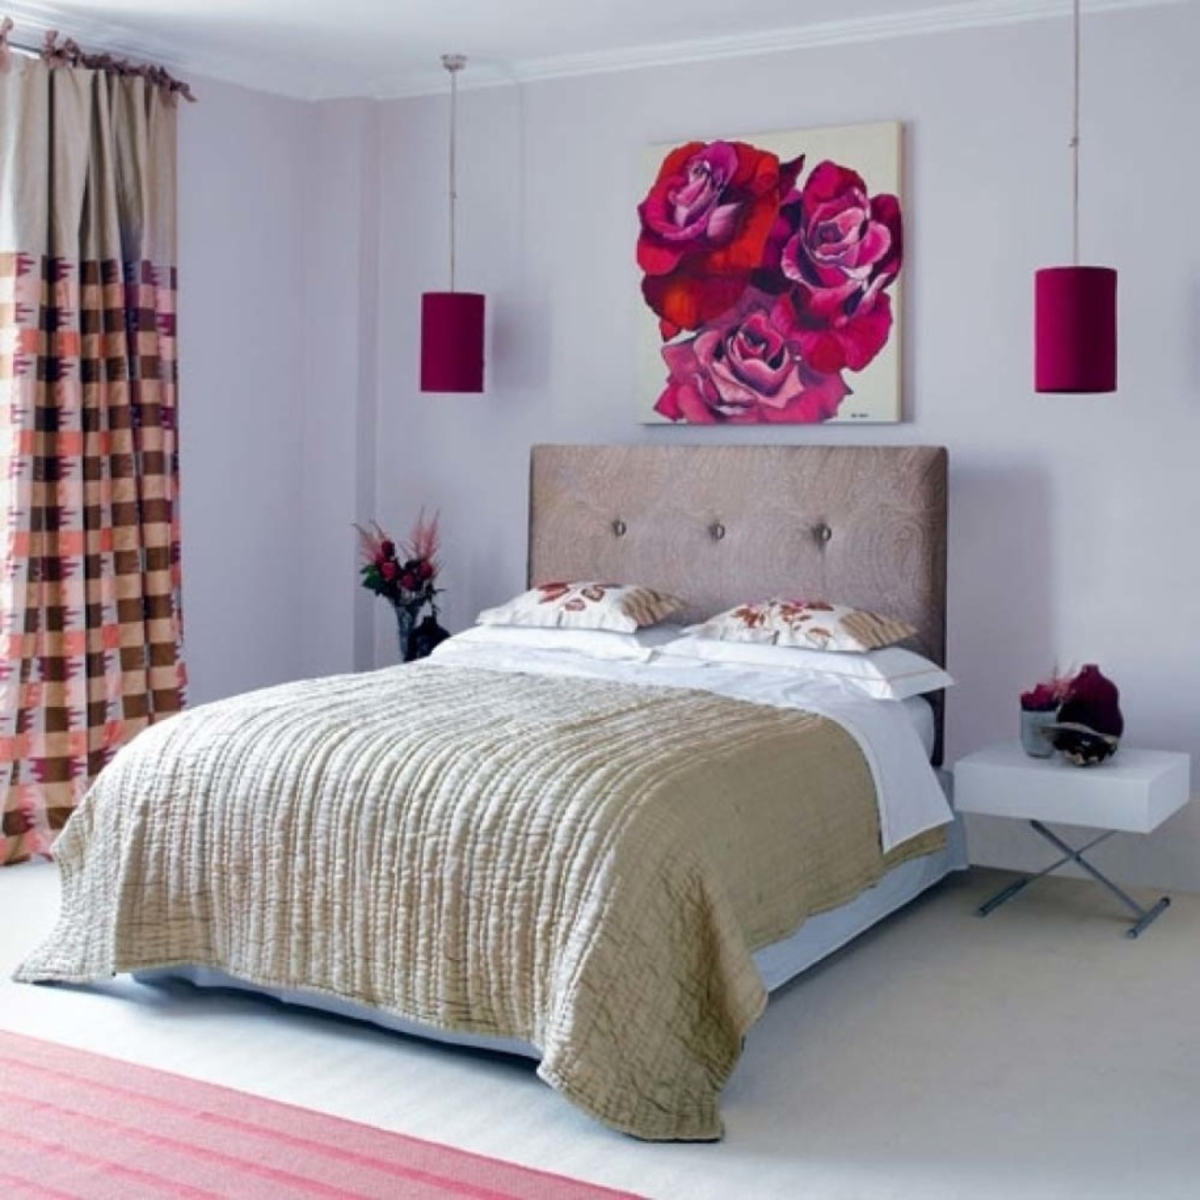 Make Your Bedroom a Romantic Haven: Part 4 | My Decorative on Small Room Bedroom Ideas  id=20140